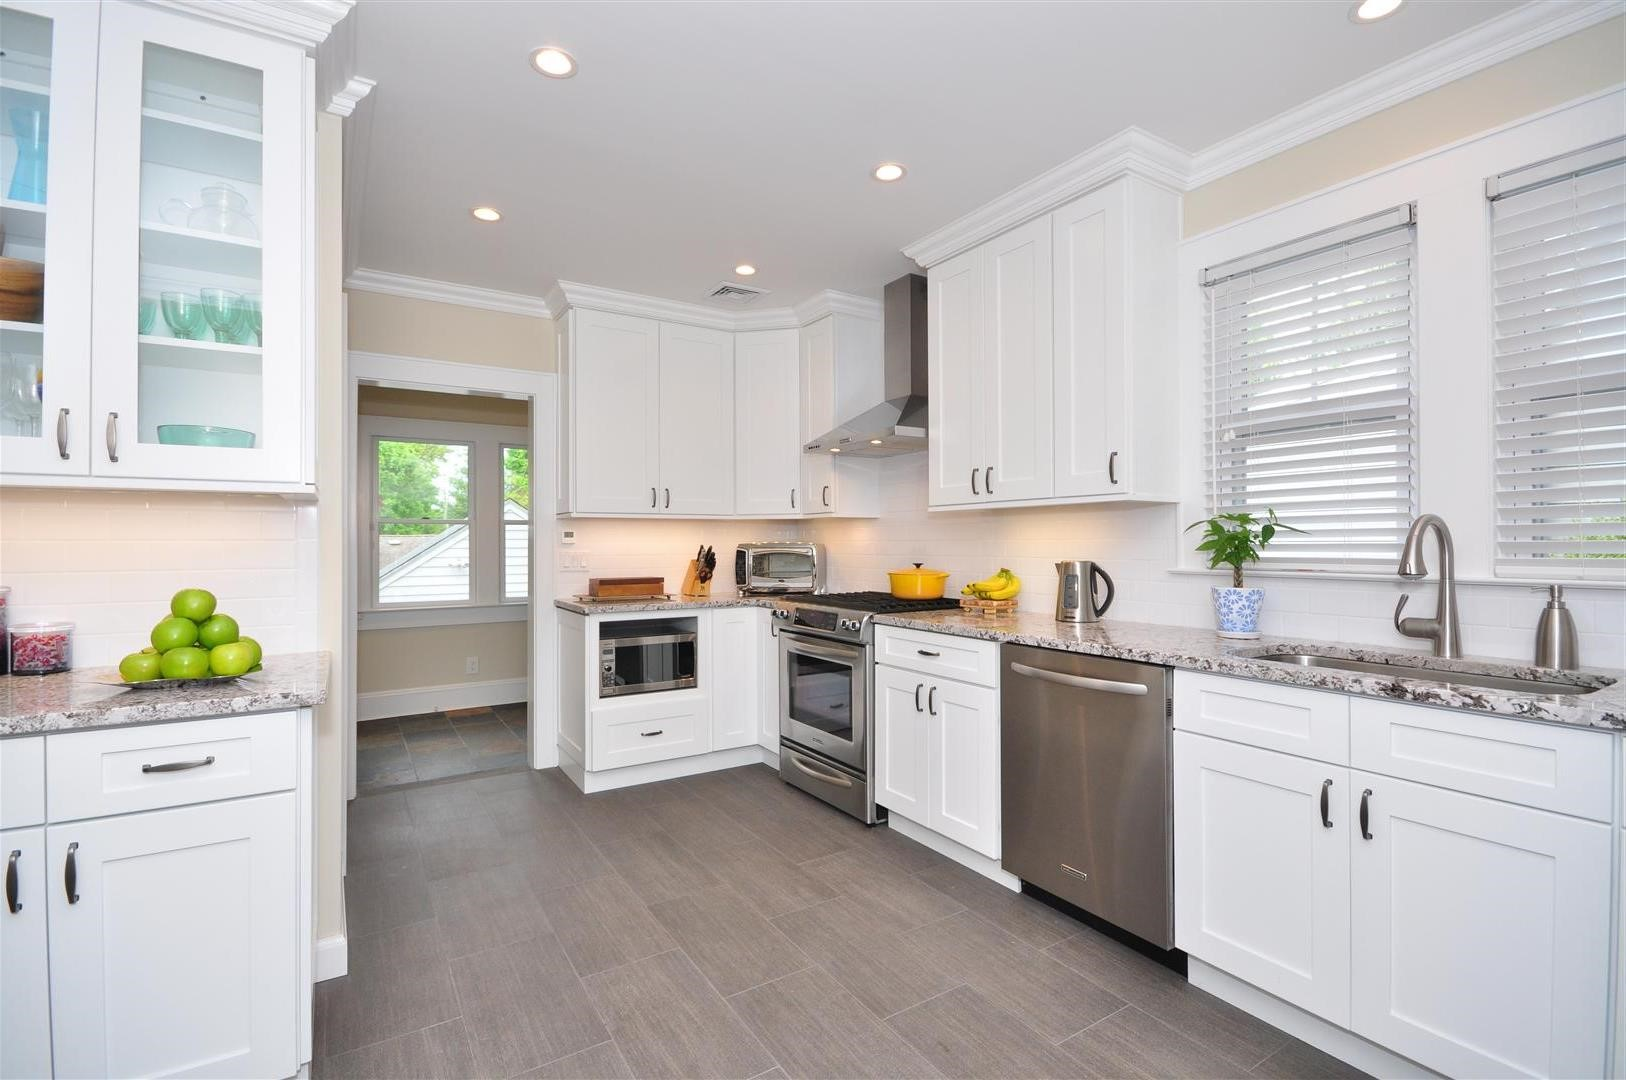 White shaker kitchen cabinets alba kitchen design center kitchen cabinets nj - Kitchen images with white cabinets ...